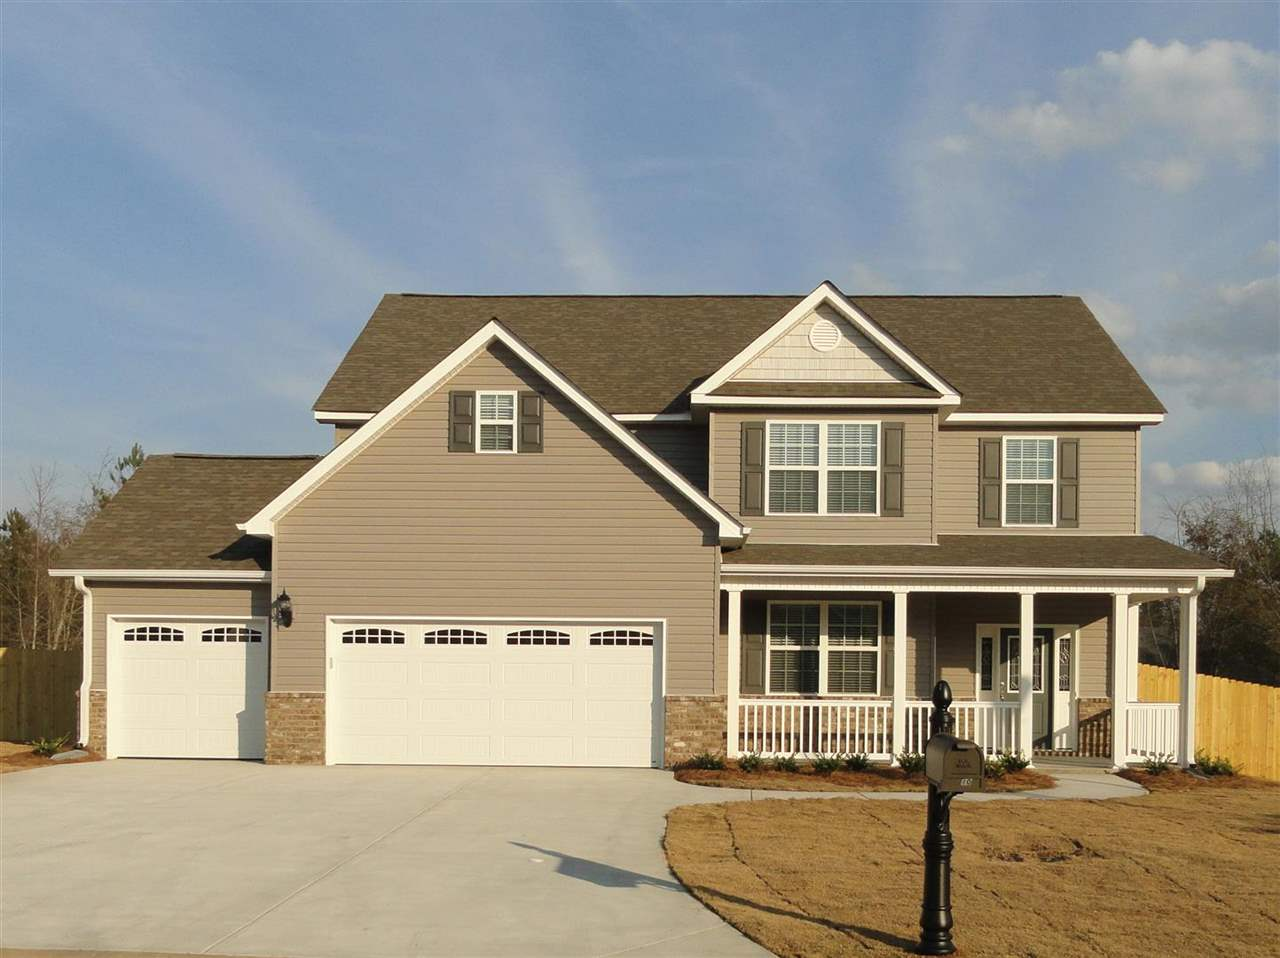 Homes for sale in perry ga under 200k for Houses for 200k